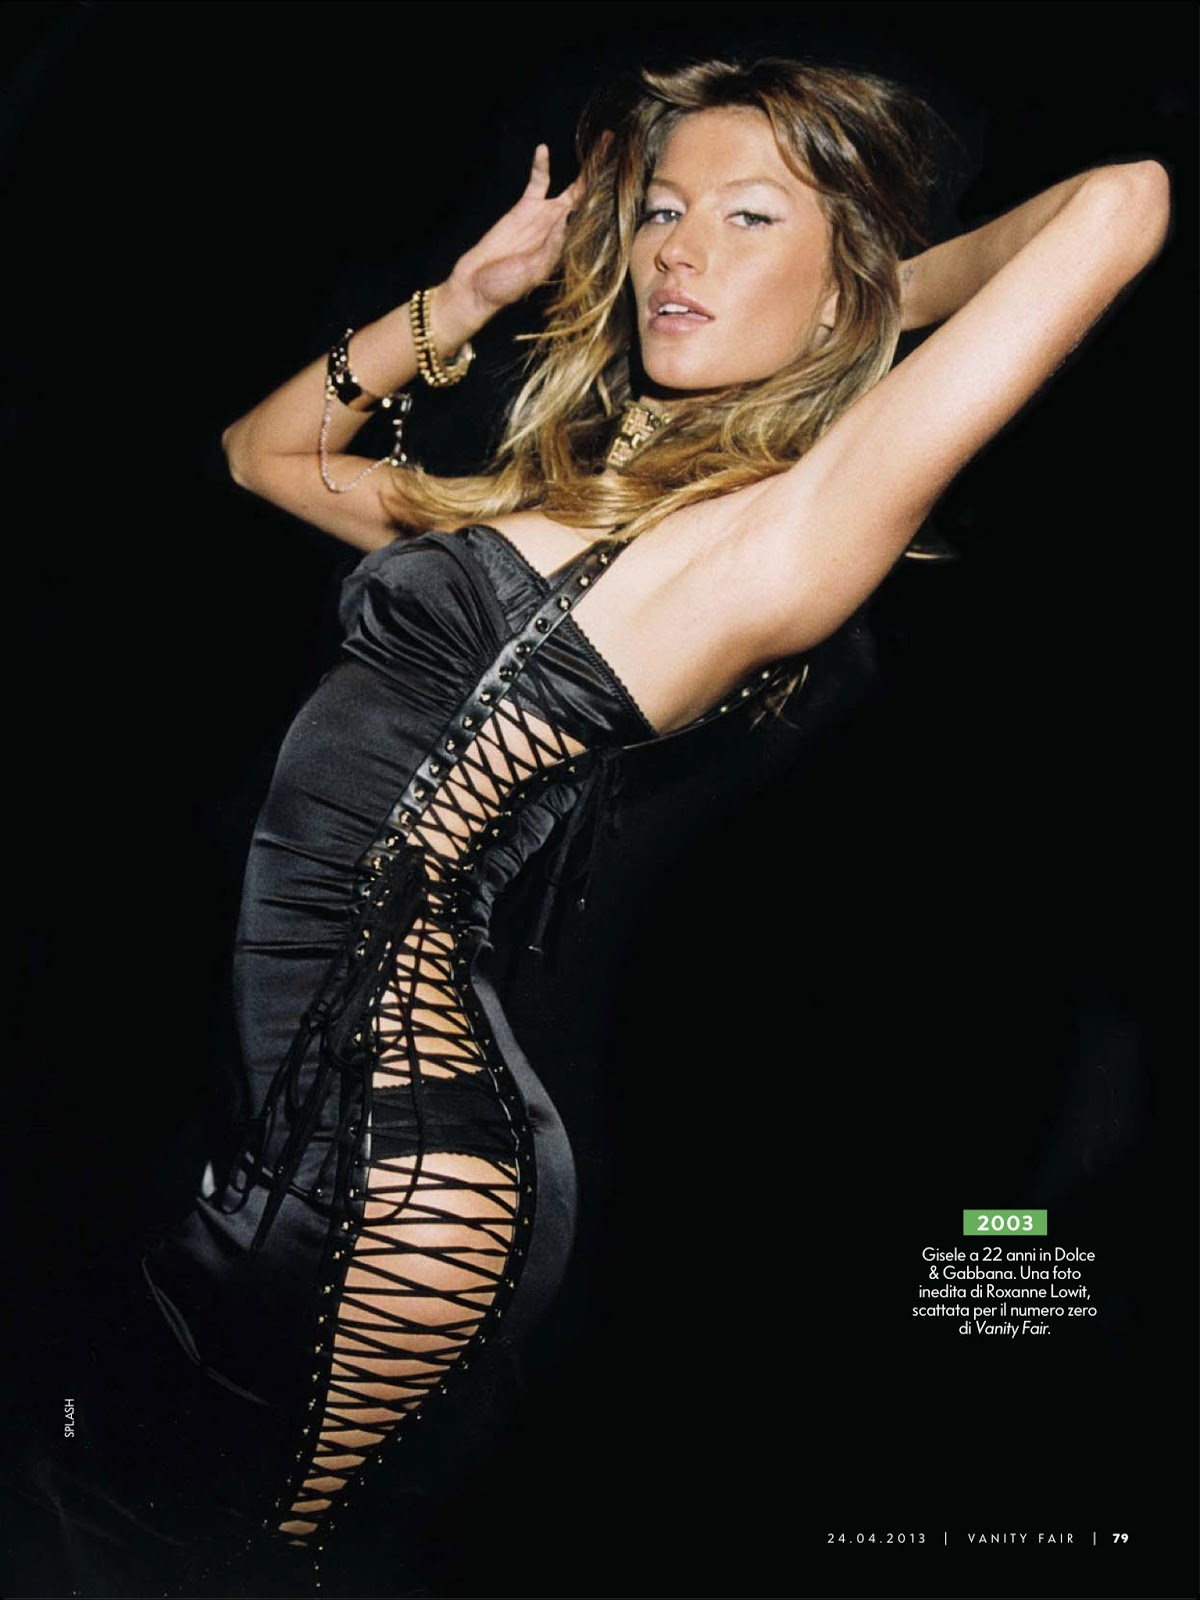 Gisele Bundchen for Vanity Fair Italy : April 2013 |MagSpider